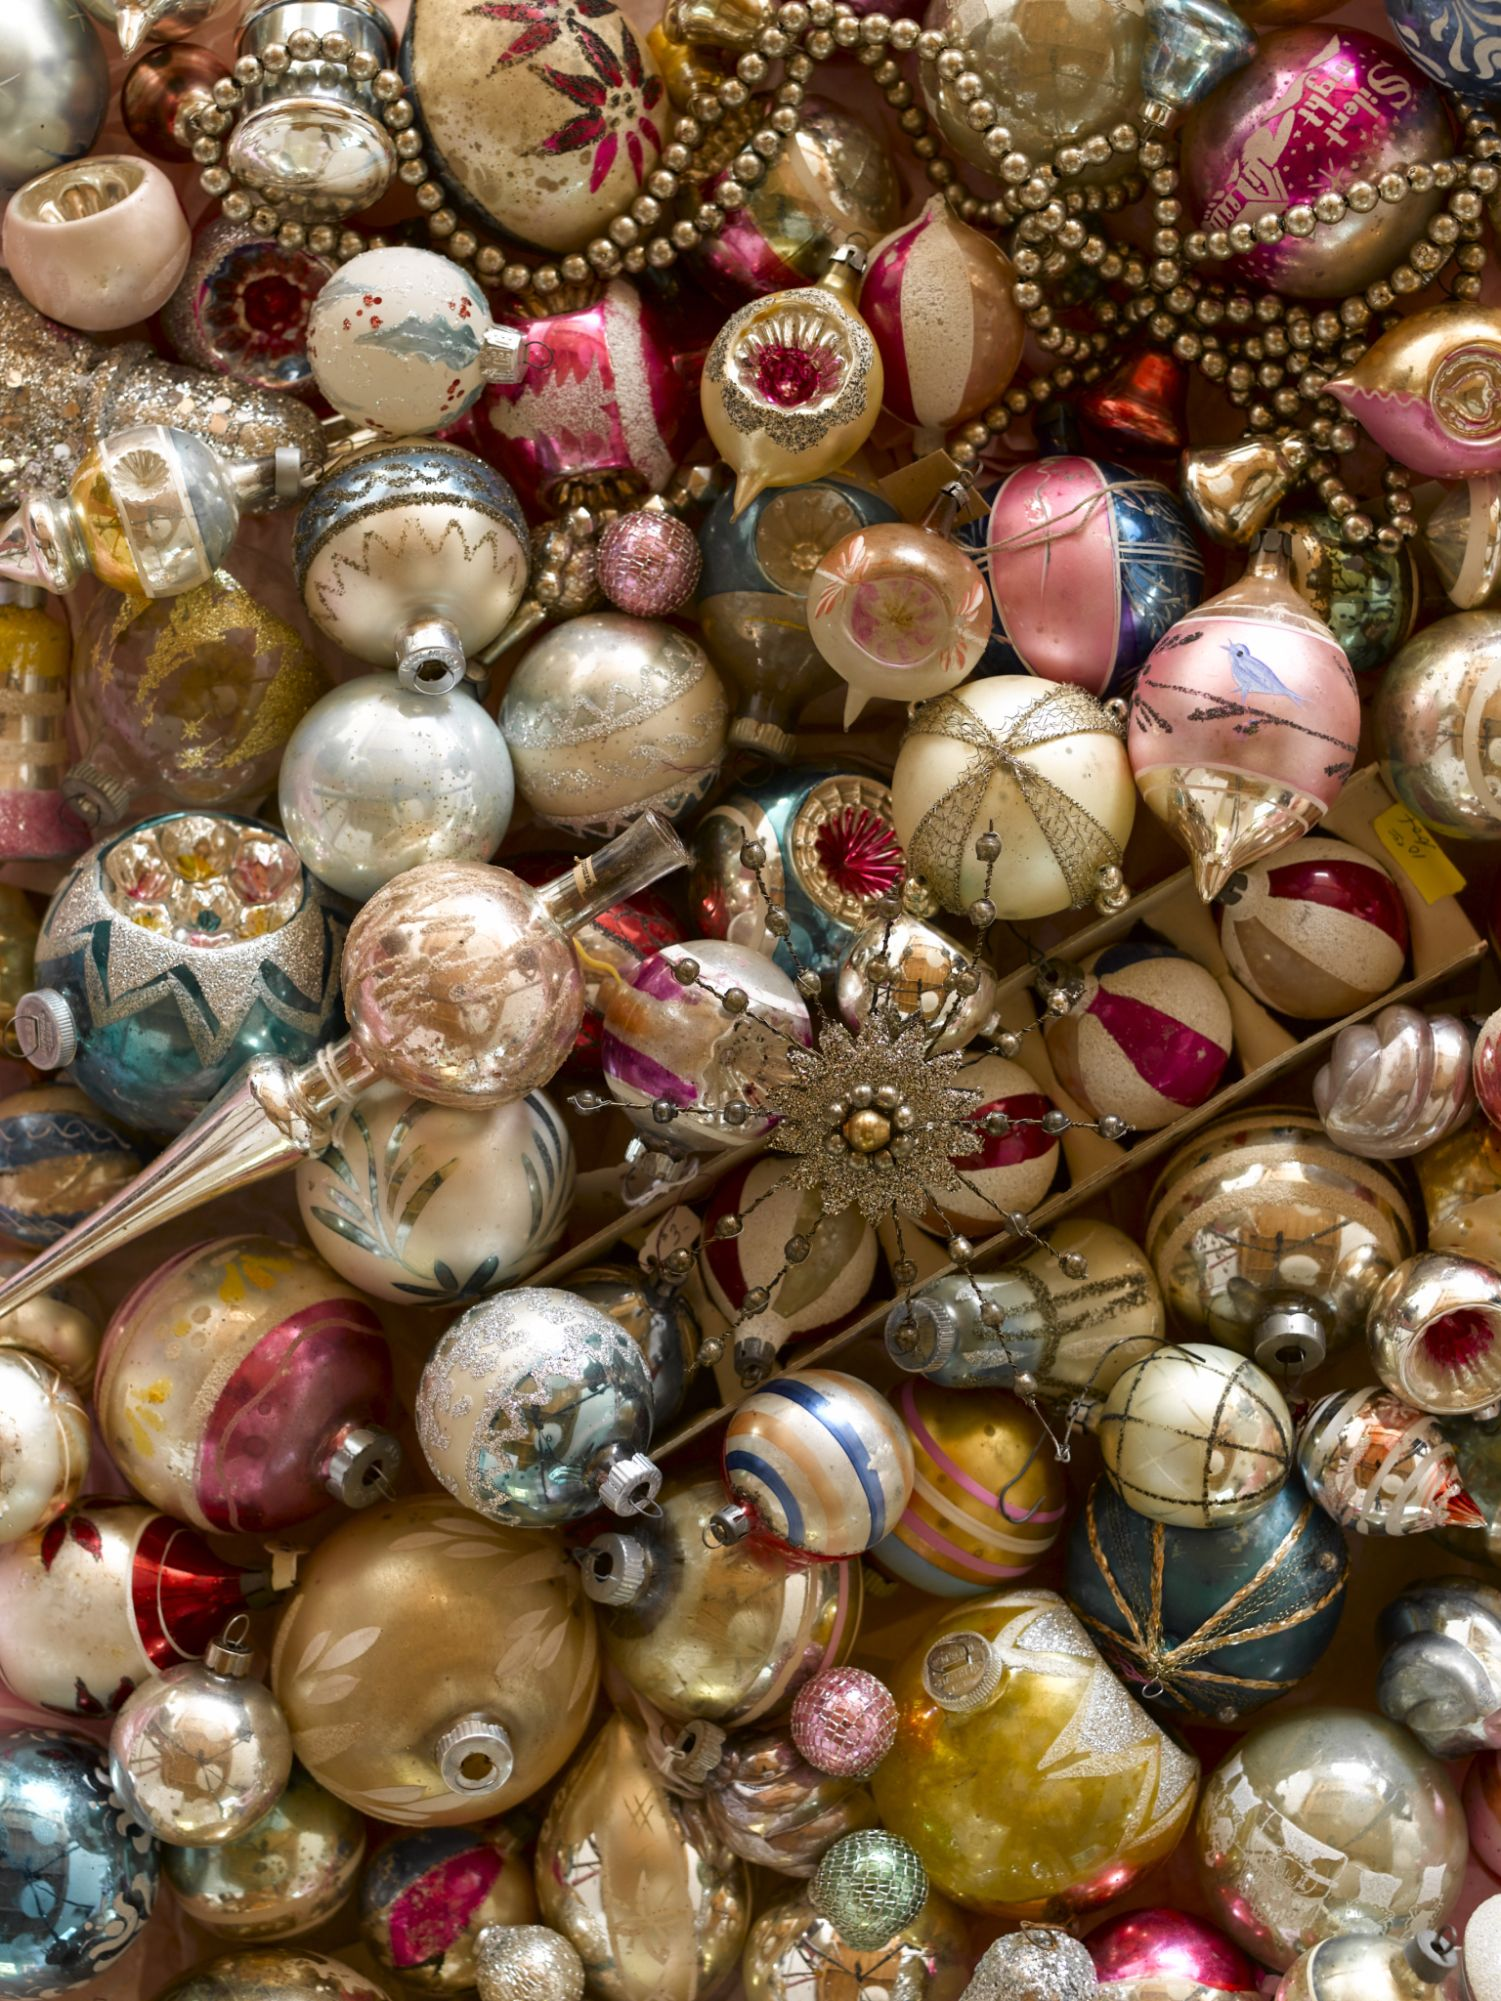 18 Vintage Christmas Decorations & Ornaments - Pictures of Old ...